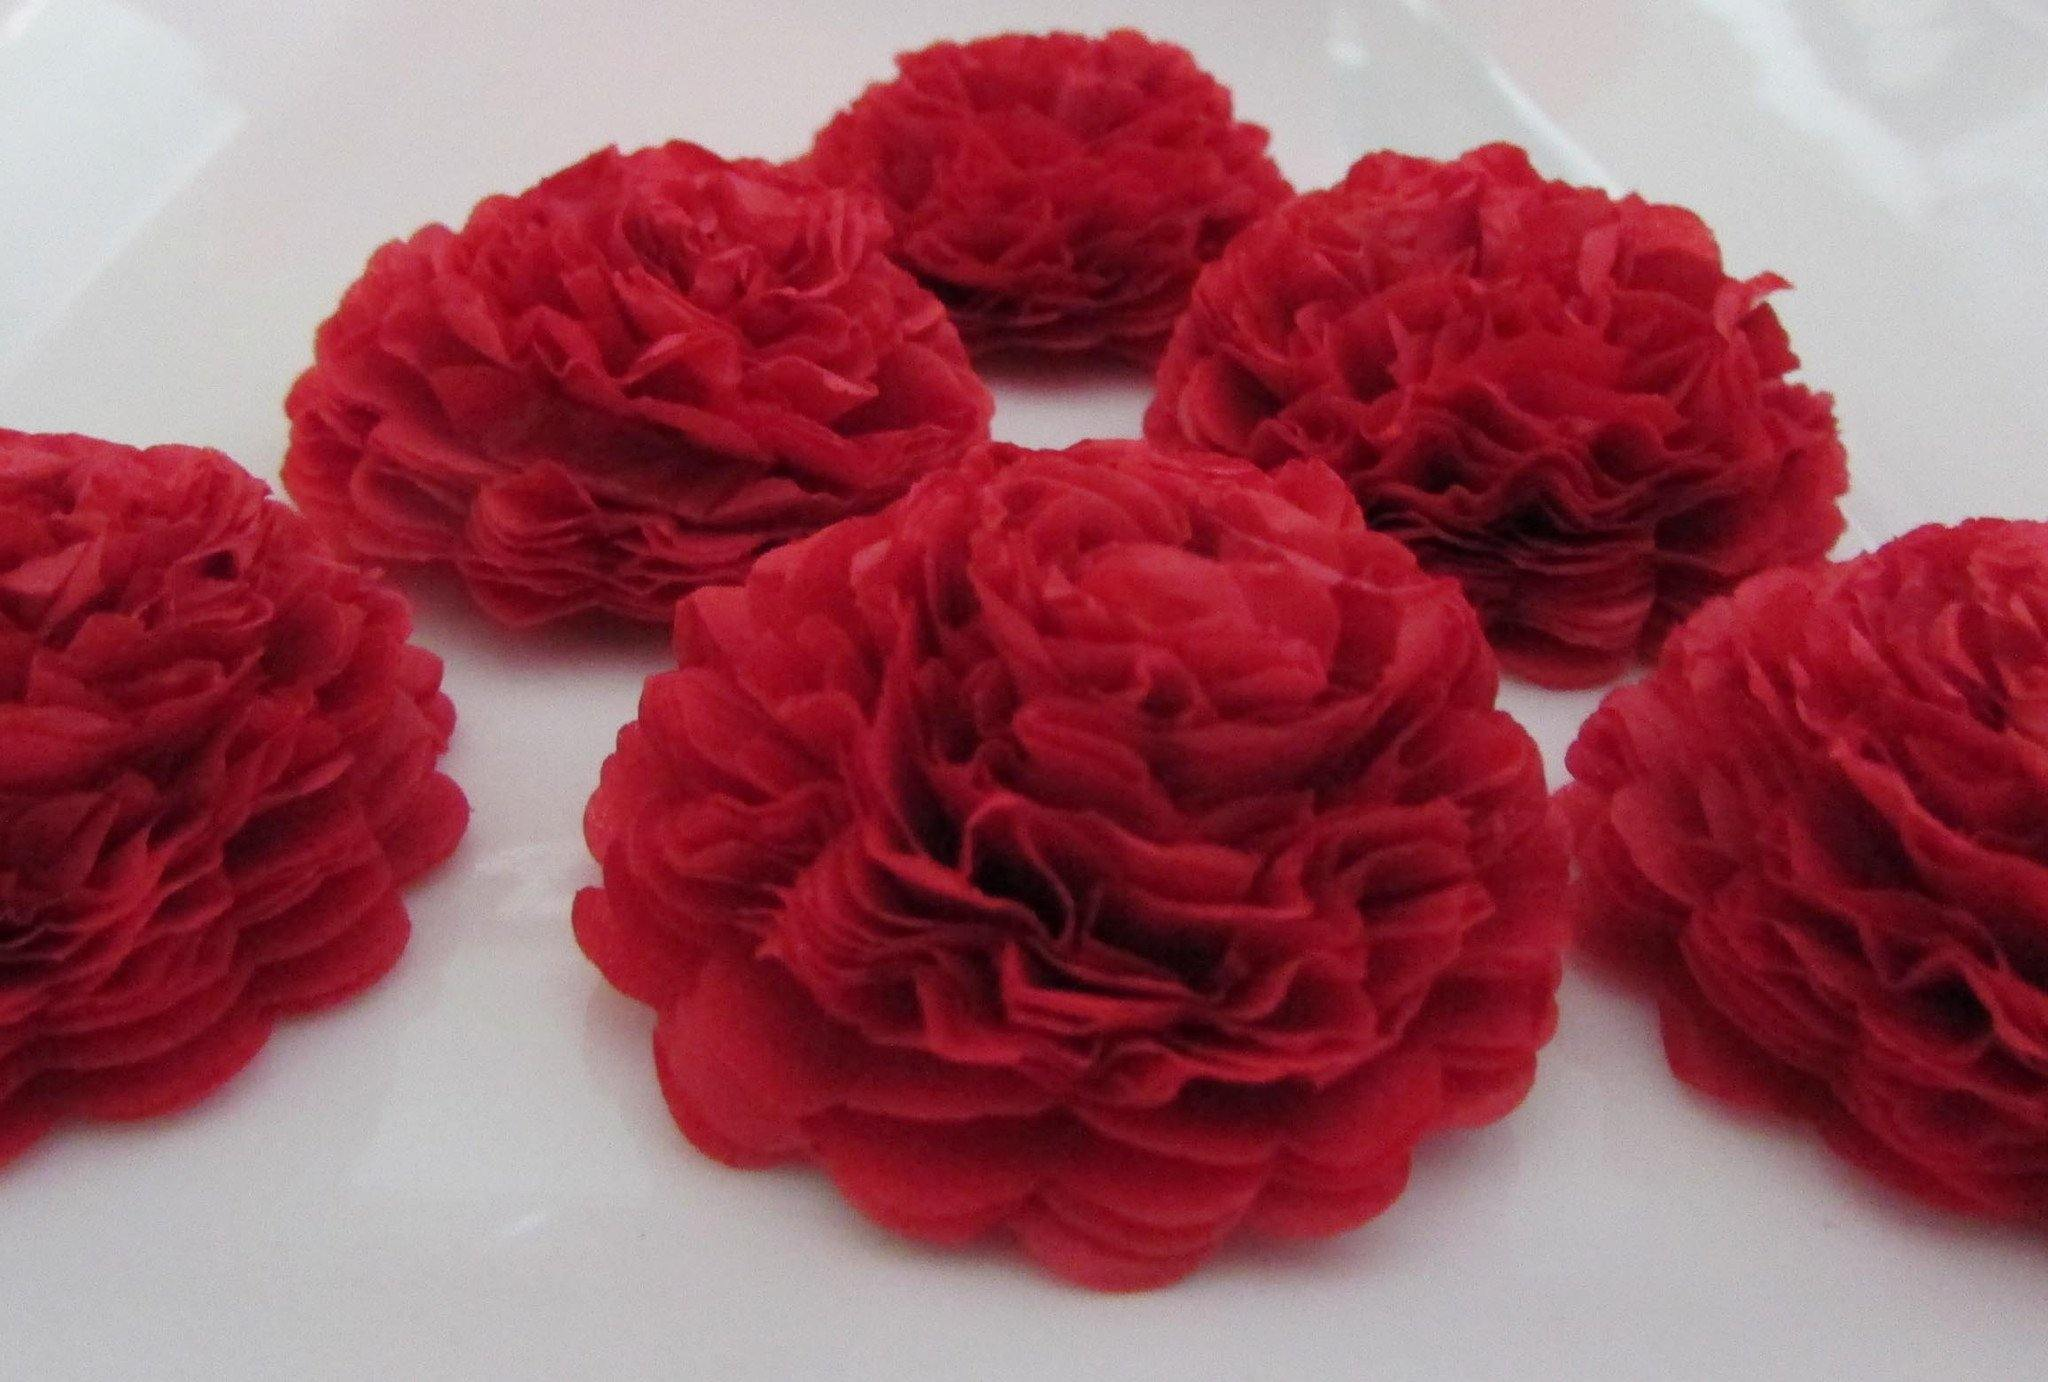 Red button mums tissue paper flowers bickiboo party supplies red button mums tissue paper flowers bickiboo party supplies mightylinksfo